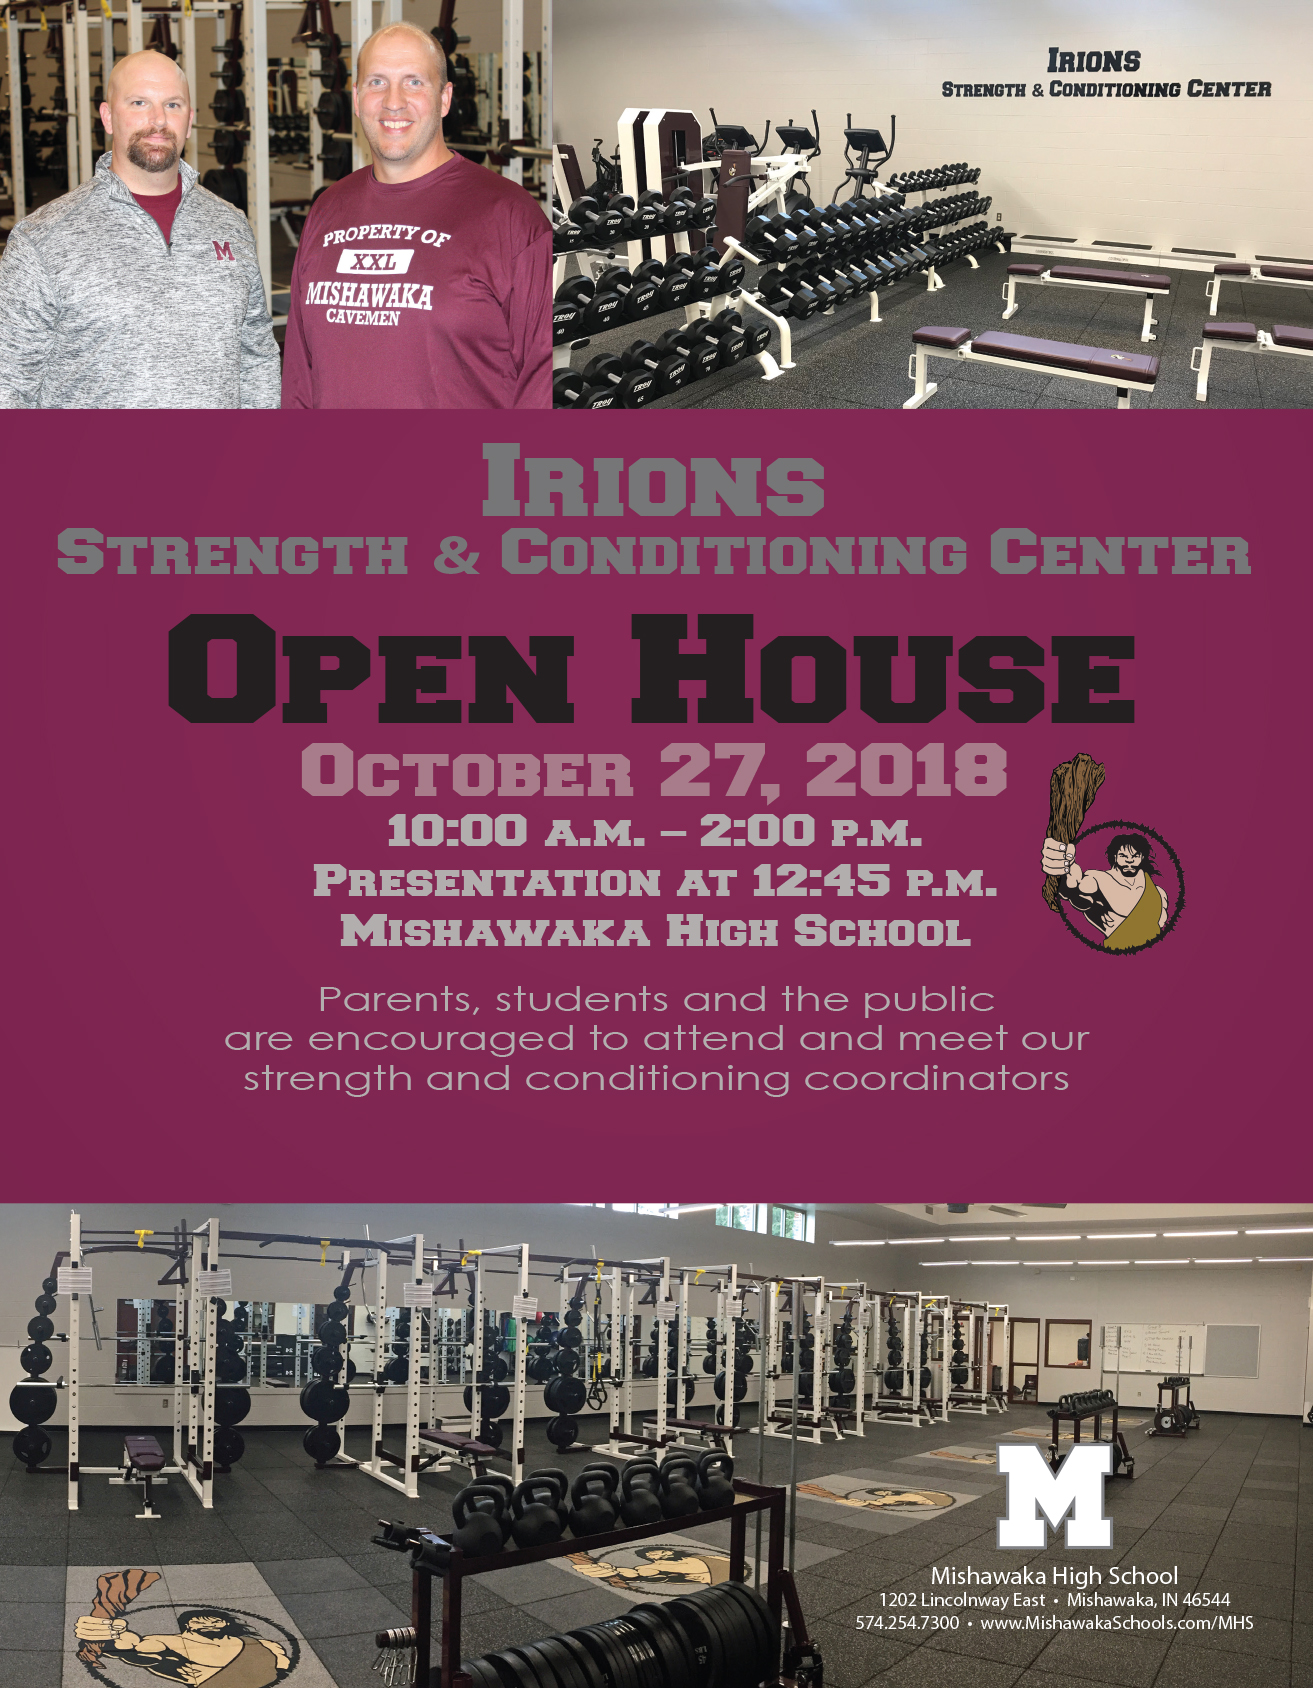 Irions Strength and Conditioning Center Open House